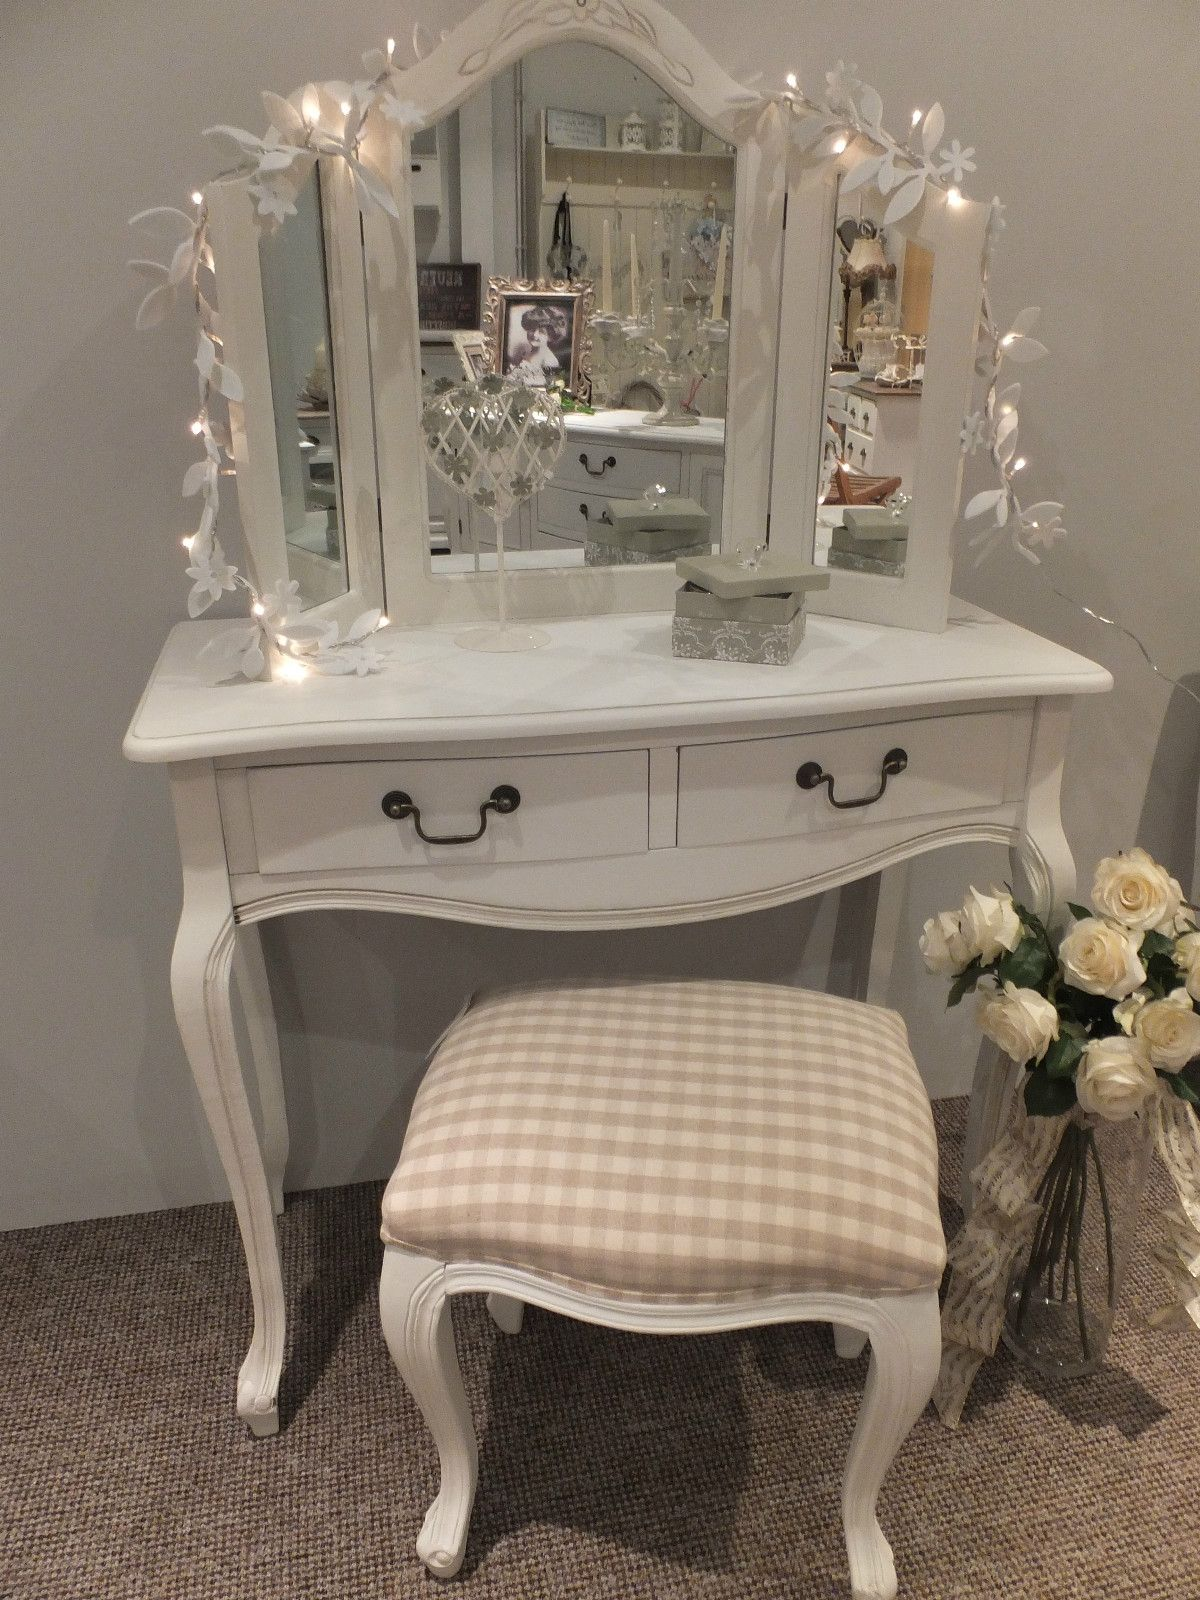 3 Way White Dressing Table Mirror Chic Desk Decor Shabby Chic Dresser White Dressing Tables